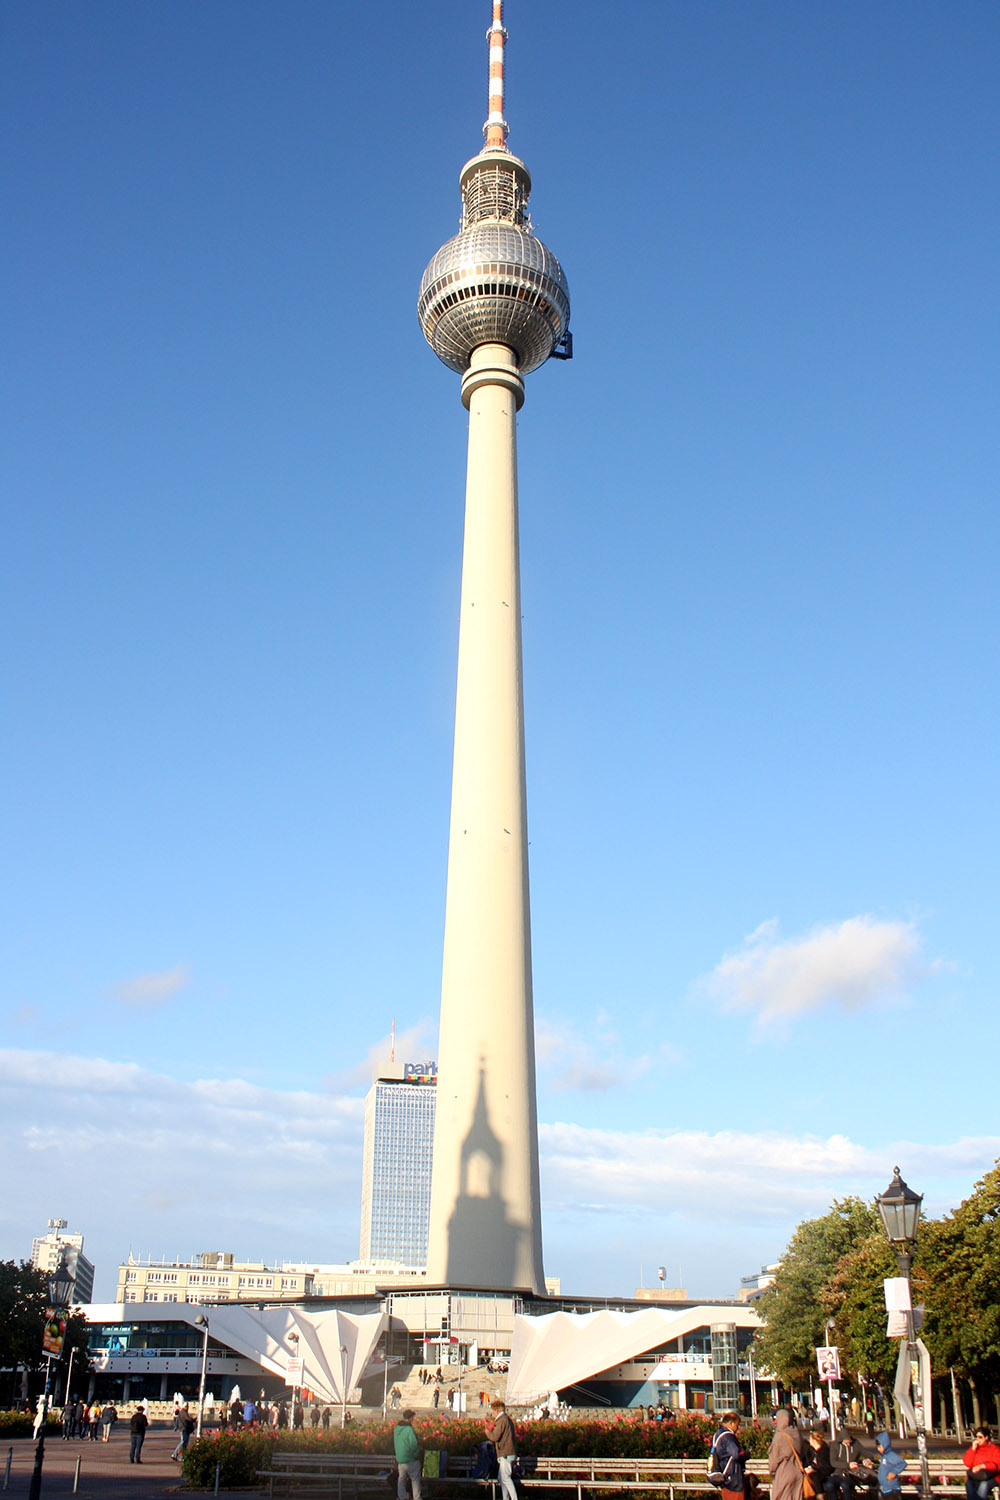 TV Tower. It was constructed between 1965 - 1969 and is the tallest building in Germany.